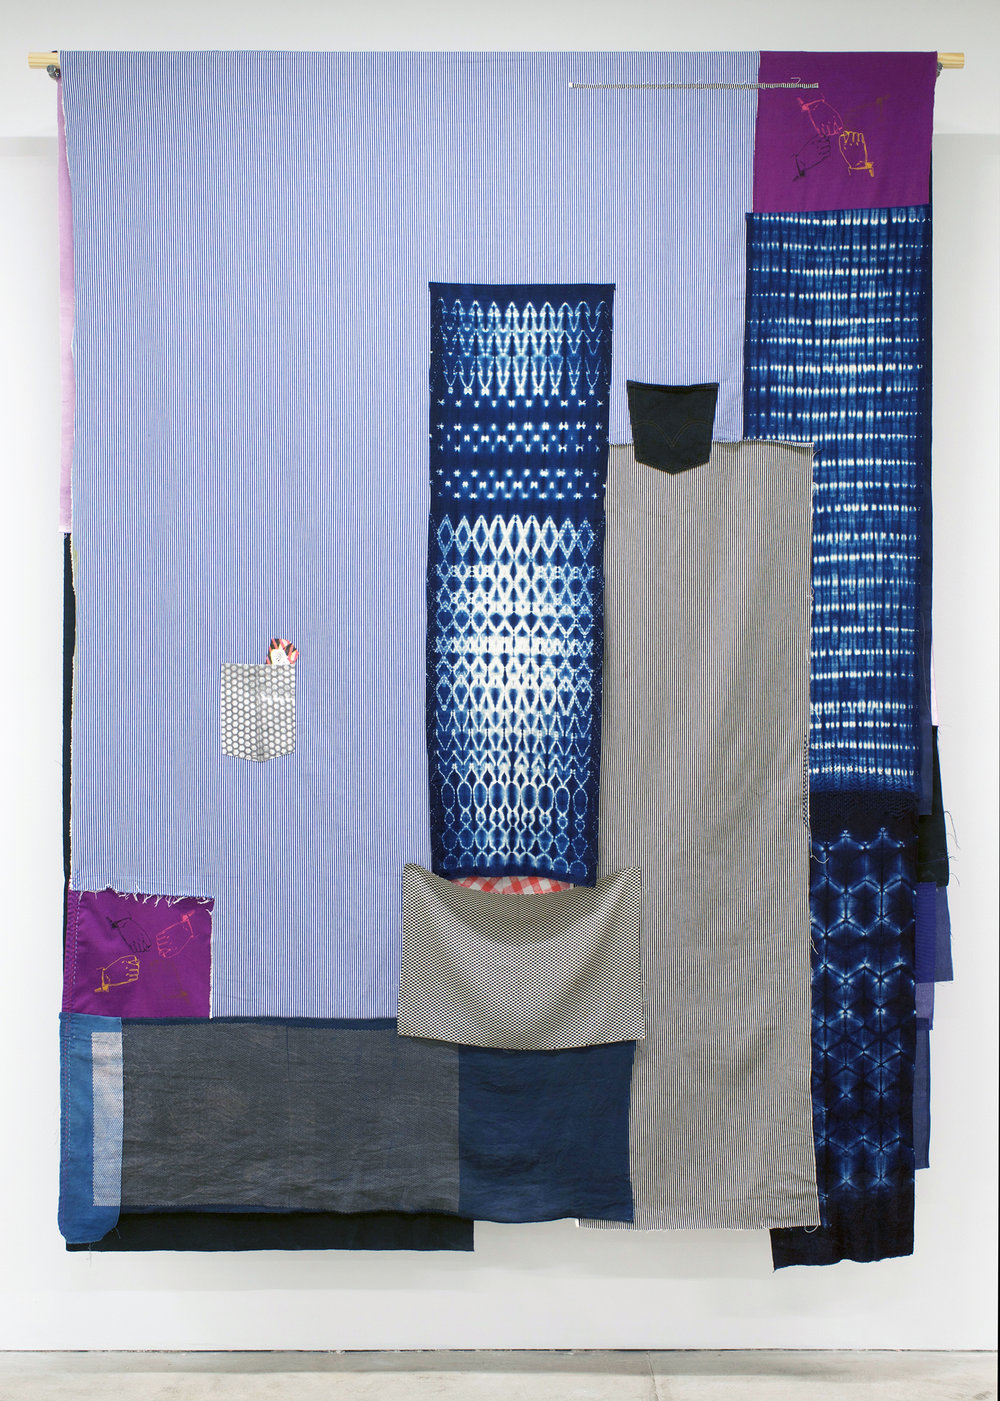 AMANDA CURRERI Gestures (Proteggere, Rubare), 2018 Hand-dyed and hand-printed fabrics with indigo, madder, soot/soya dyes and acrylic on various fabrics such as used tablecloths, vintage Japanese linen, and cotton kimono fabric; vintage Japanese silk, Japanese denim (new), American denim (new), deconstructed denim jeans pocket, screen print on paper, digital print on fabric, recycled American flag cutoffs, and thread, 96 x 72""